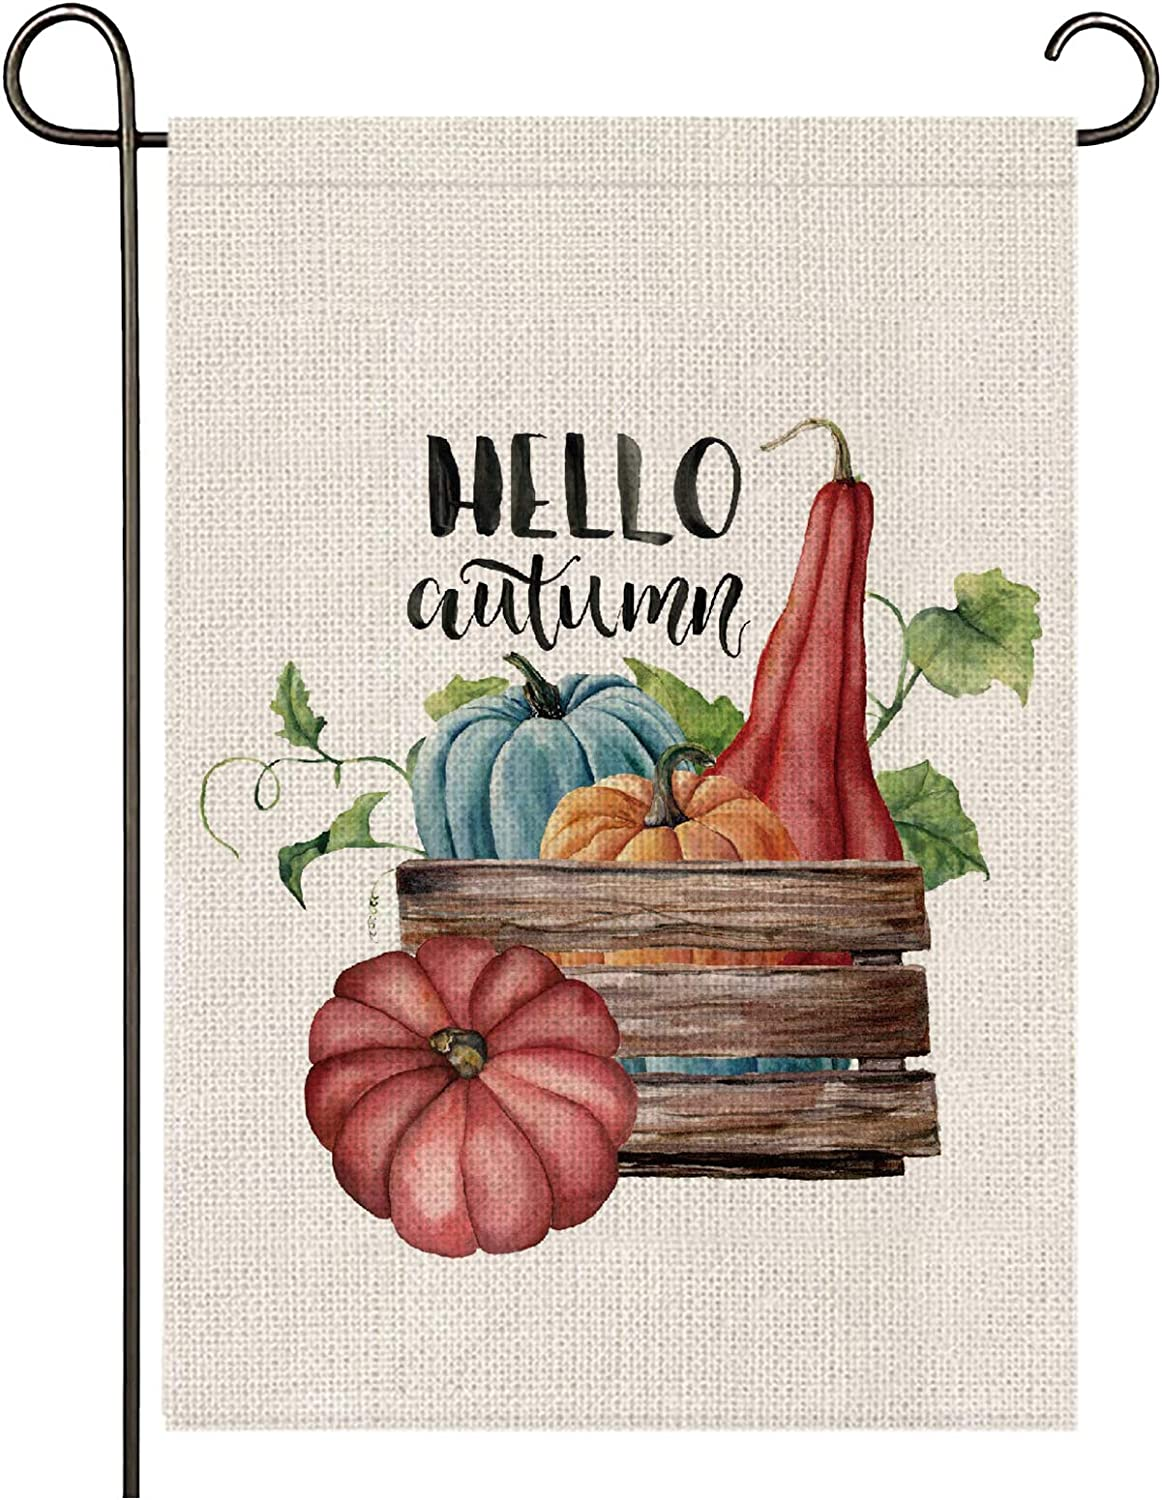 onetoze Fall Garden Flag Hello Autumn Garden Flag Vertical Double Sided, Pumpkin Patch 12.5X18inch Welcome Garden Flag, Premium Burlap Weather and UV Resistant for Yard Outdoor Decoration